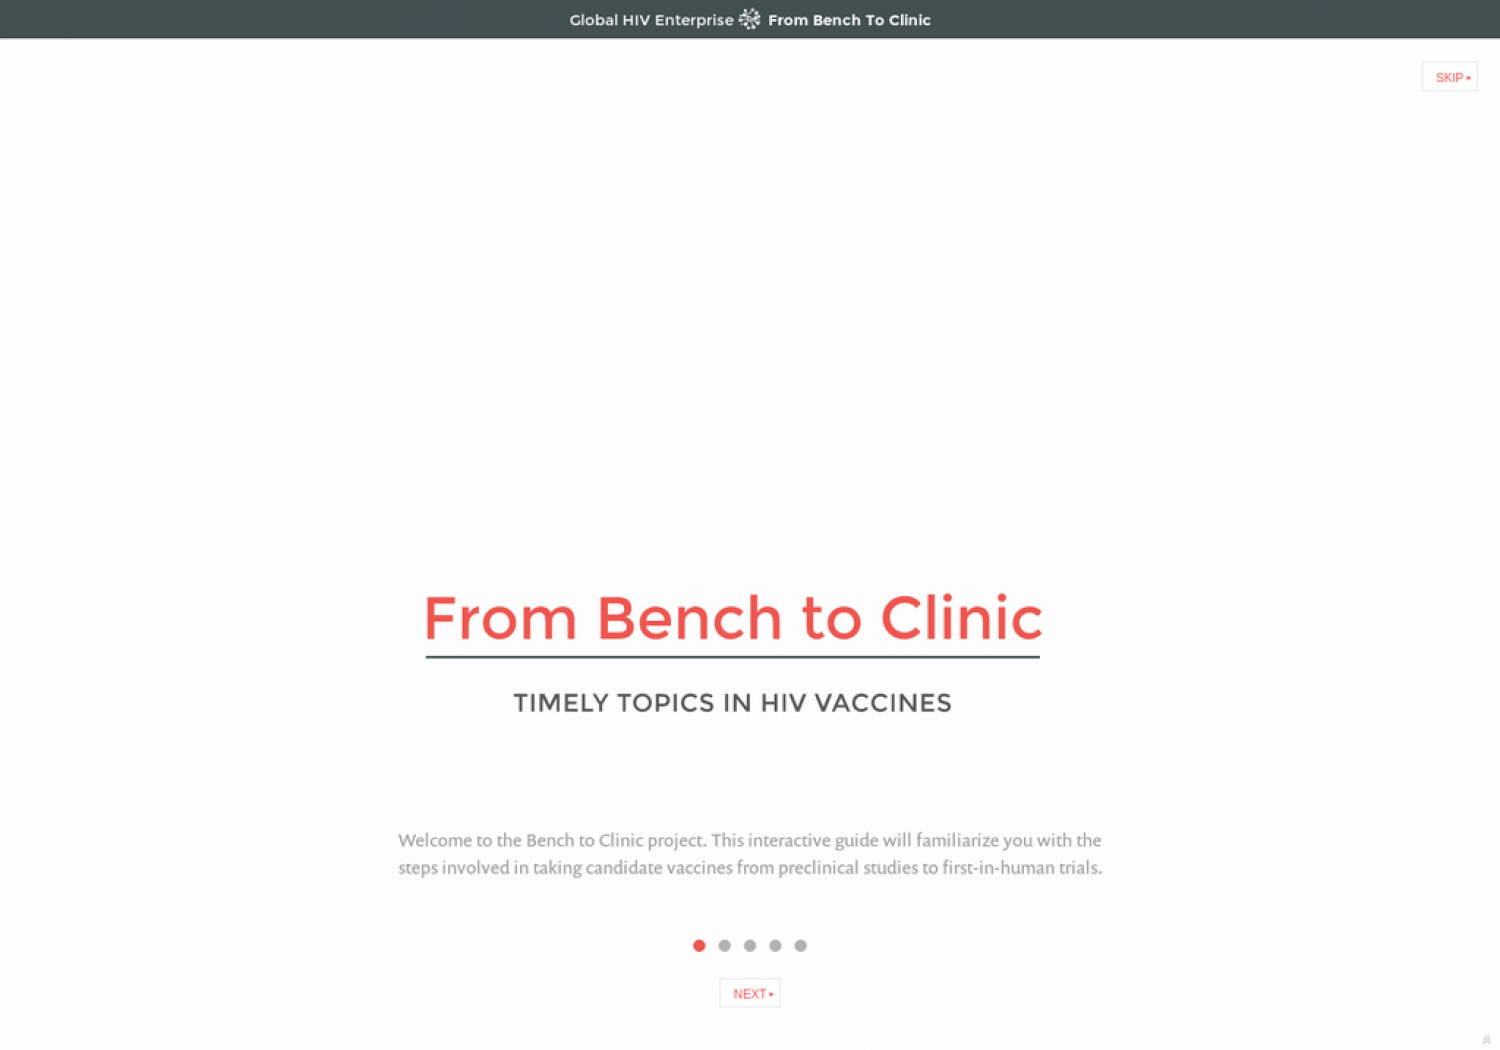 From Bench to Clinic Infographic